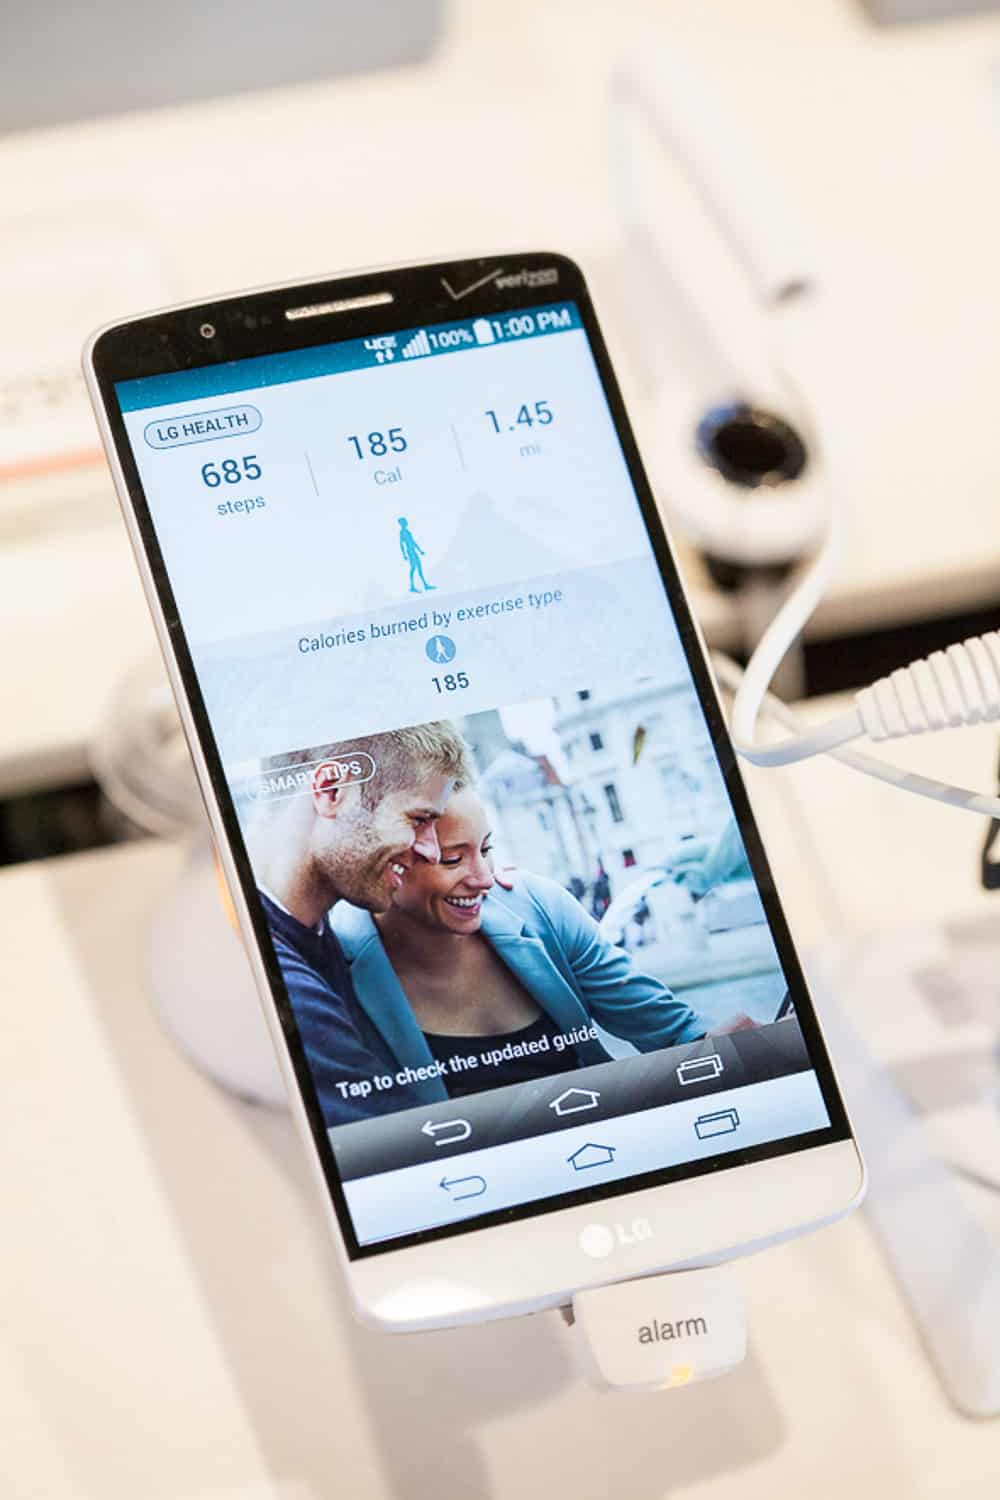 Event photograph of a new LG G3.